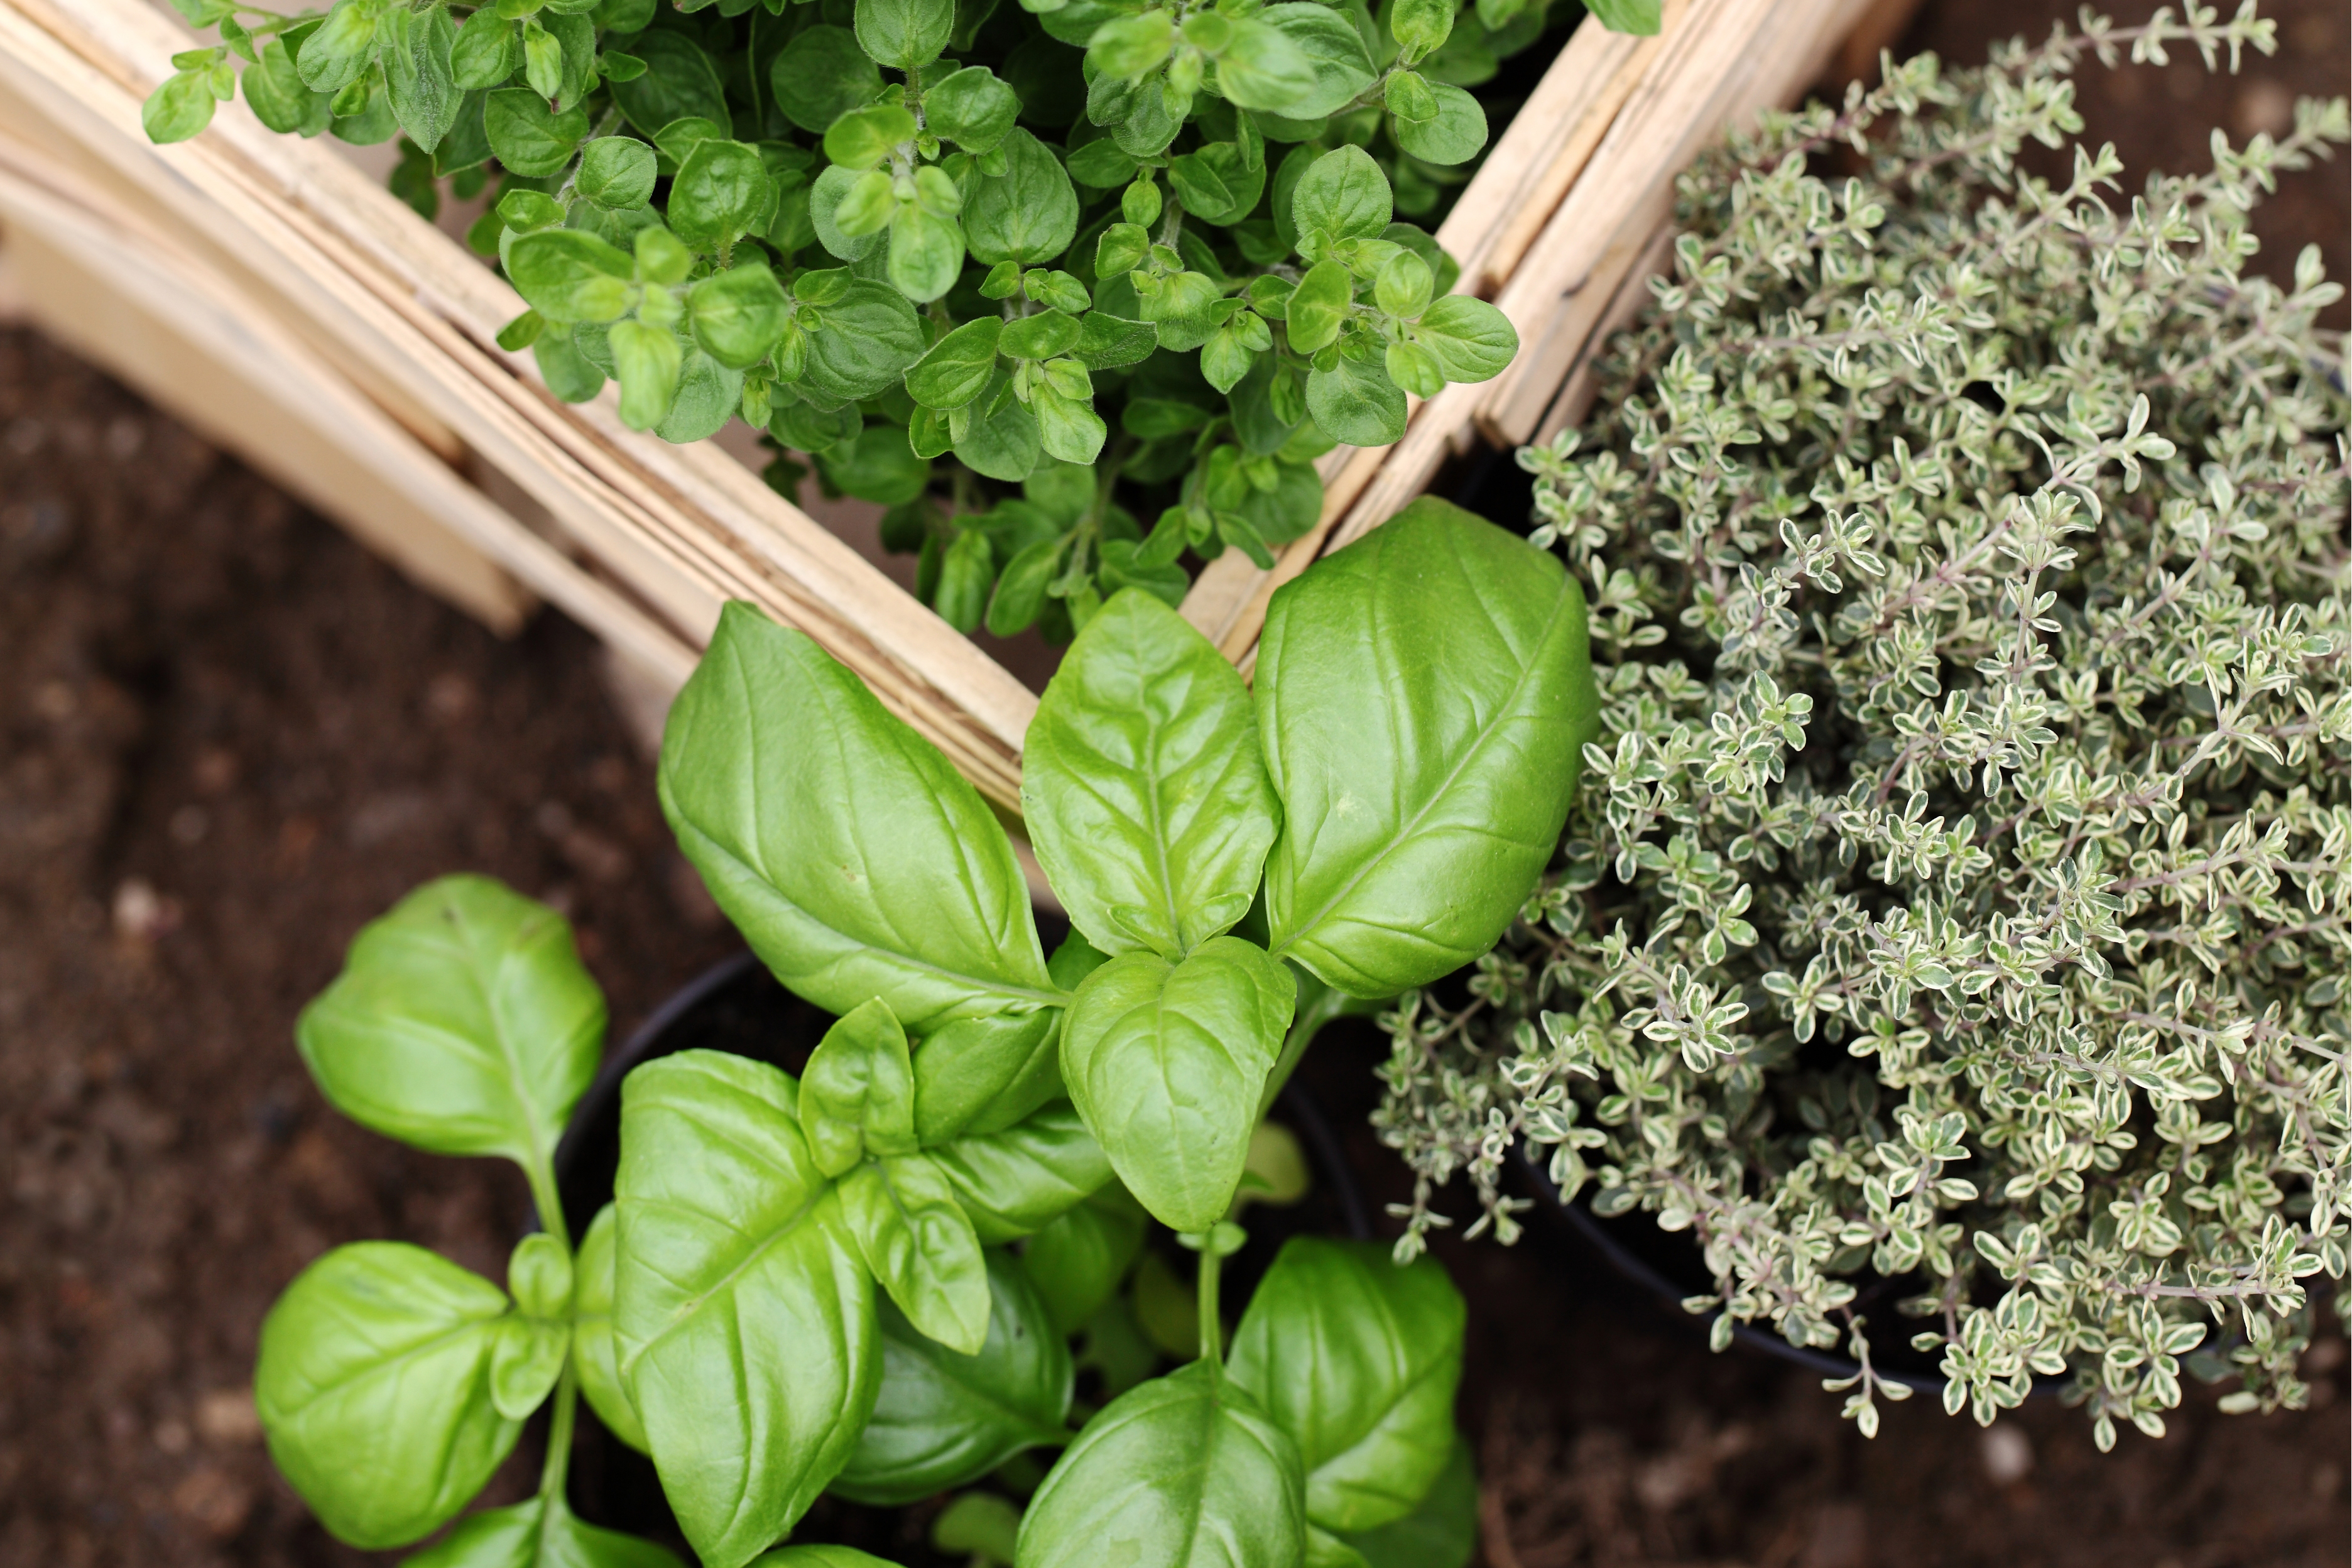 How To Grow Lavender Thyme Basil And Other Herbs The